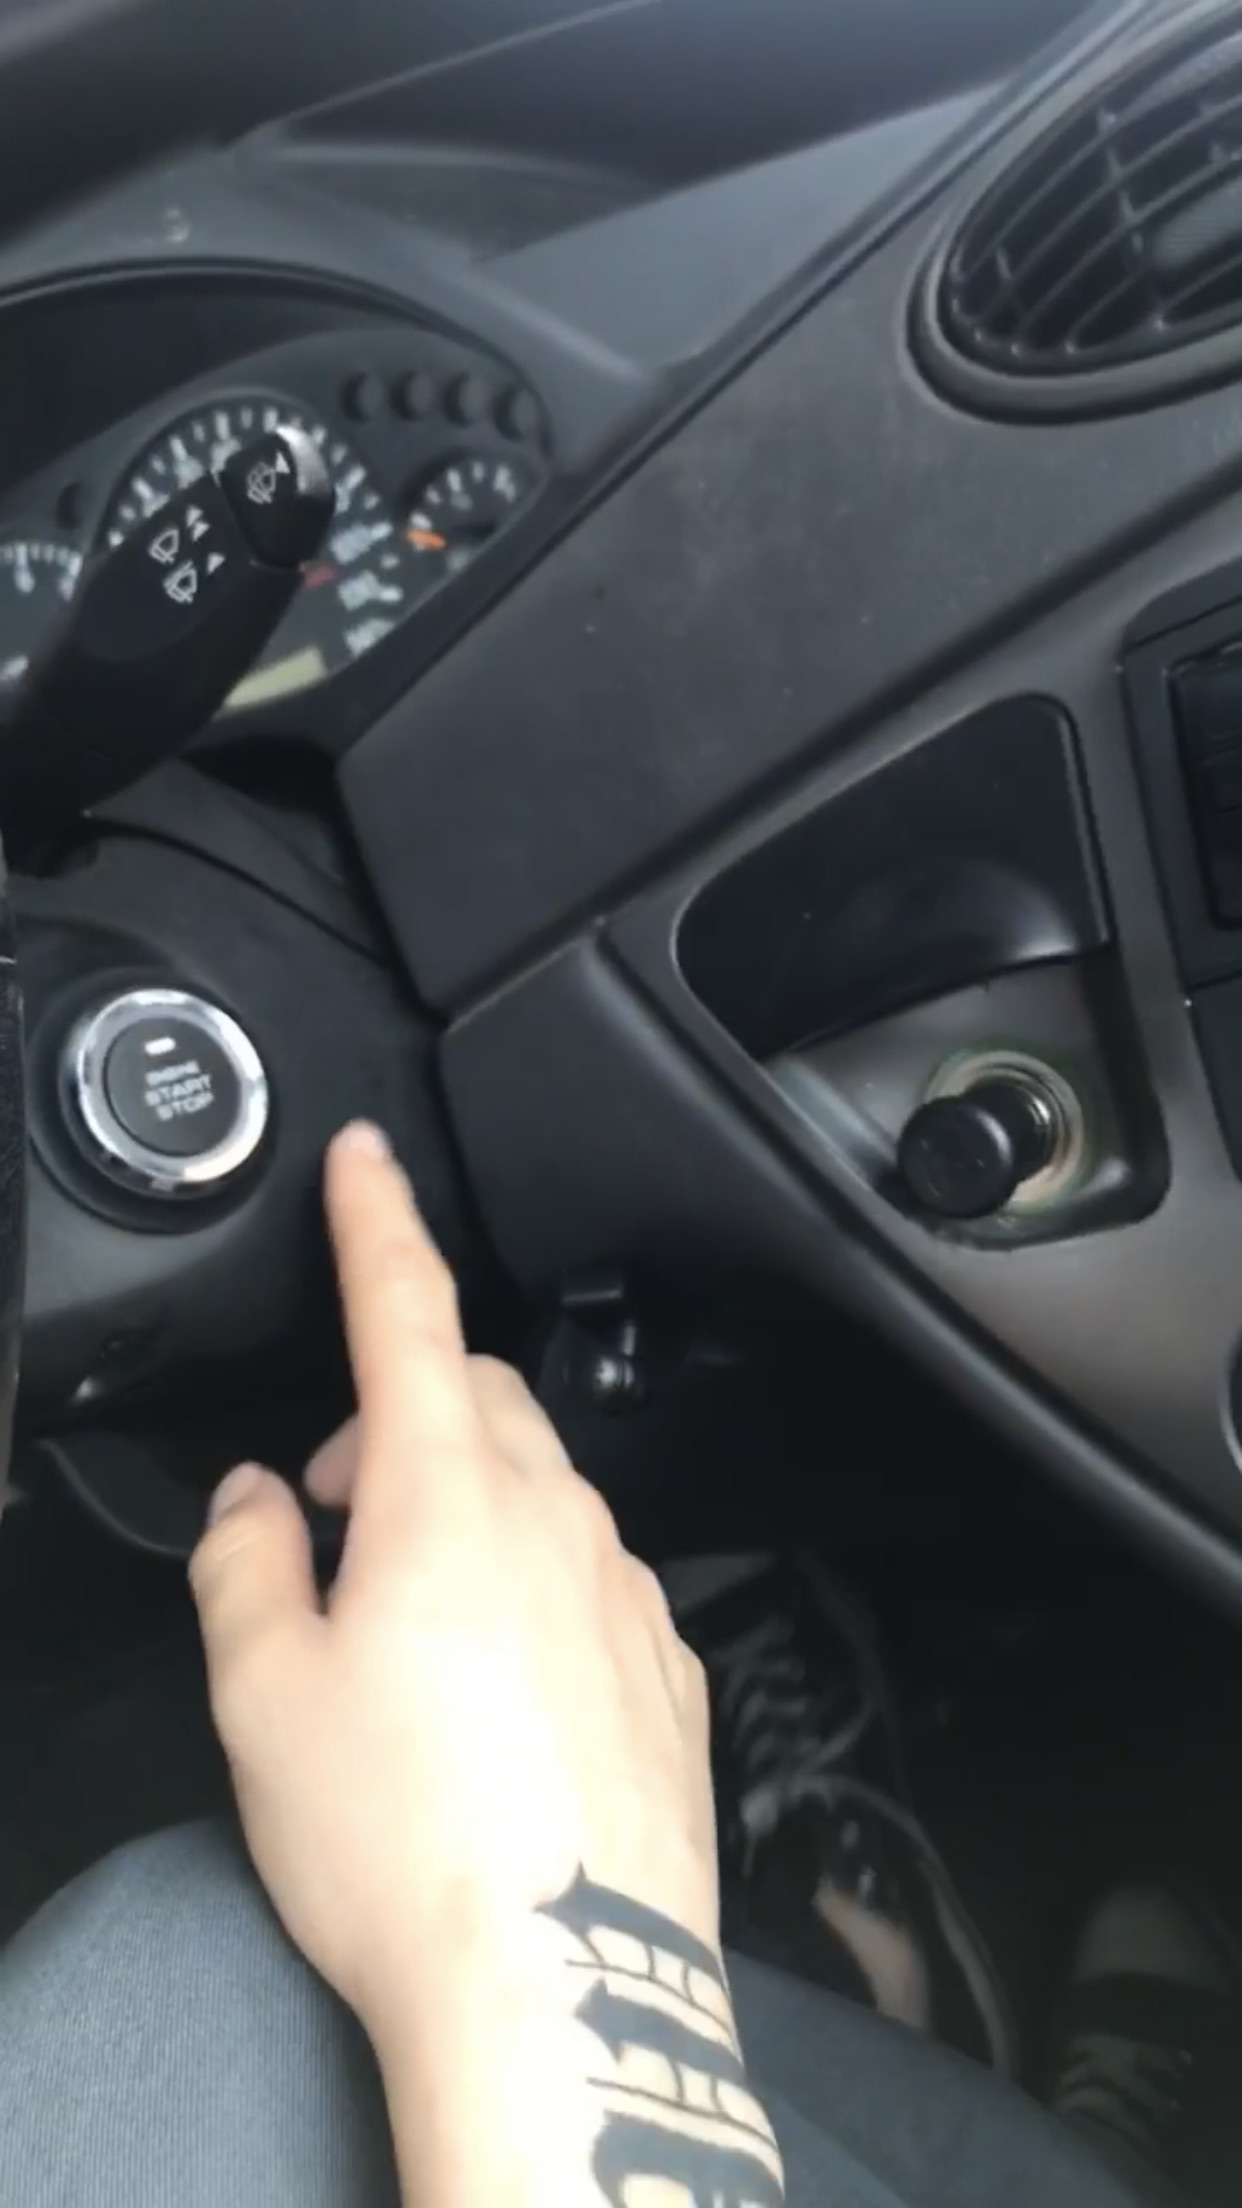 REAL push start in an '01 ZX3. Pics included.-b8645681-7c03-4a01-ad8f-7dfb94b5f6d2_1557670955769.jpeg